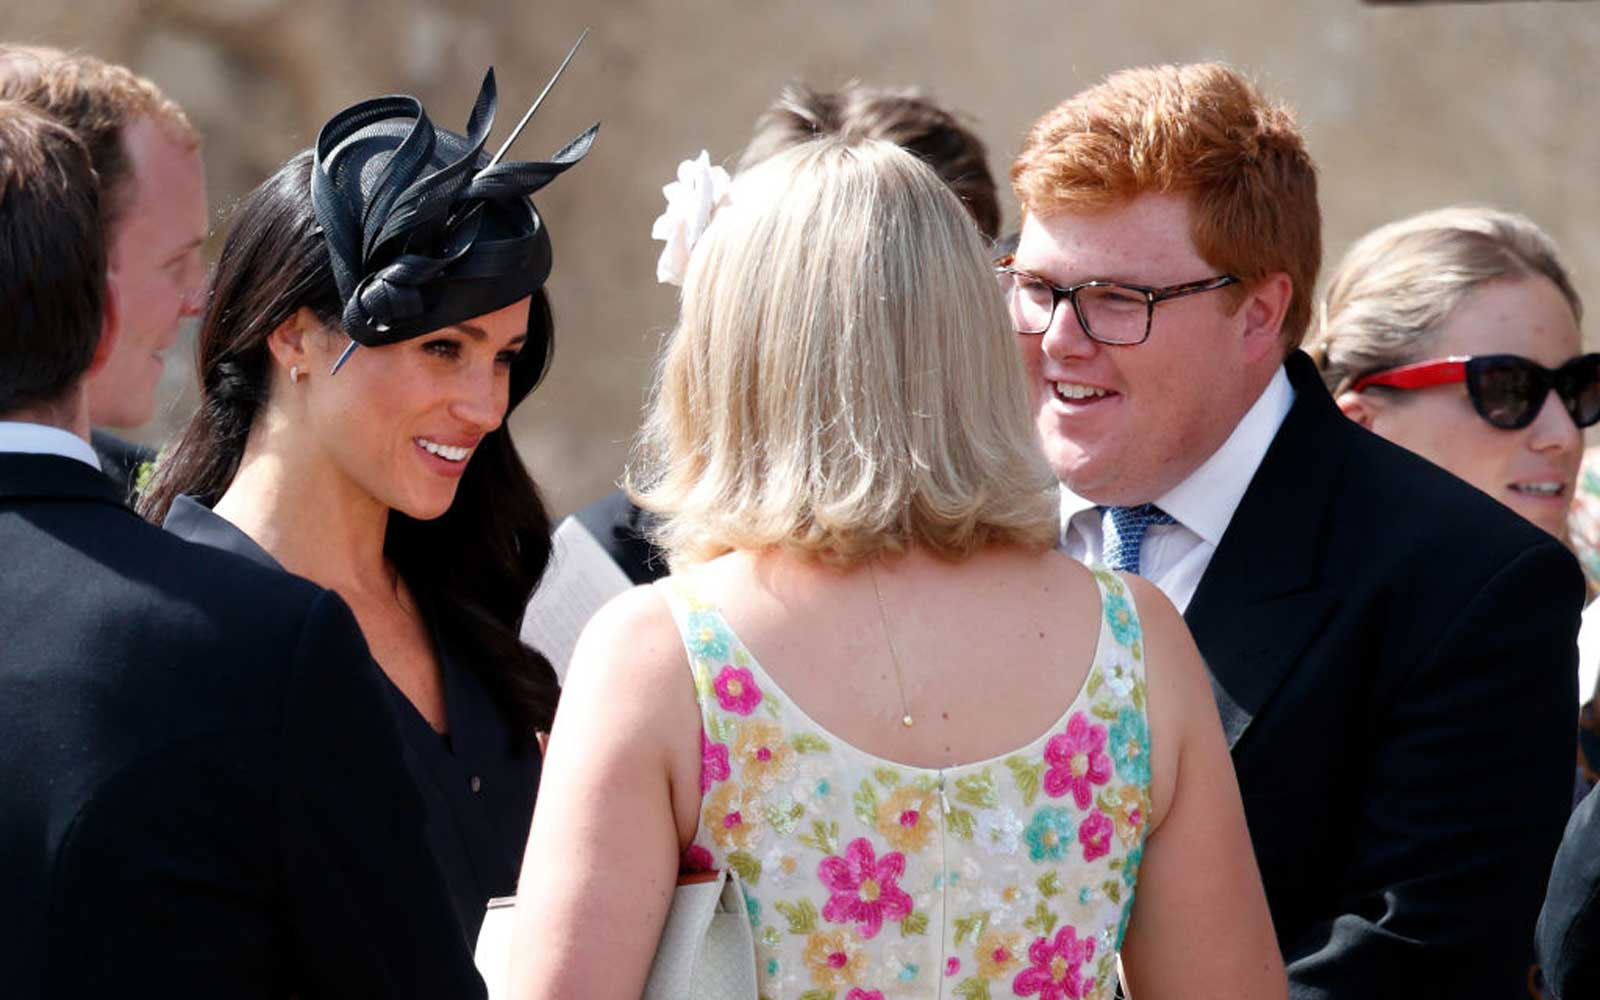 Meghan, Duchess of Sussex talks with Celia McCorquodale and George Woodhouse as she attends the wedding of Charlie van Straubenzee and Daisy Jenks at the church of St Mary the Virgin